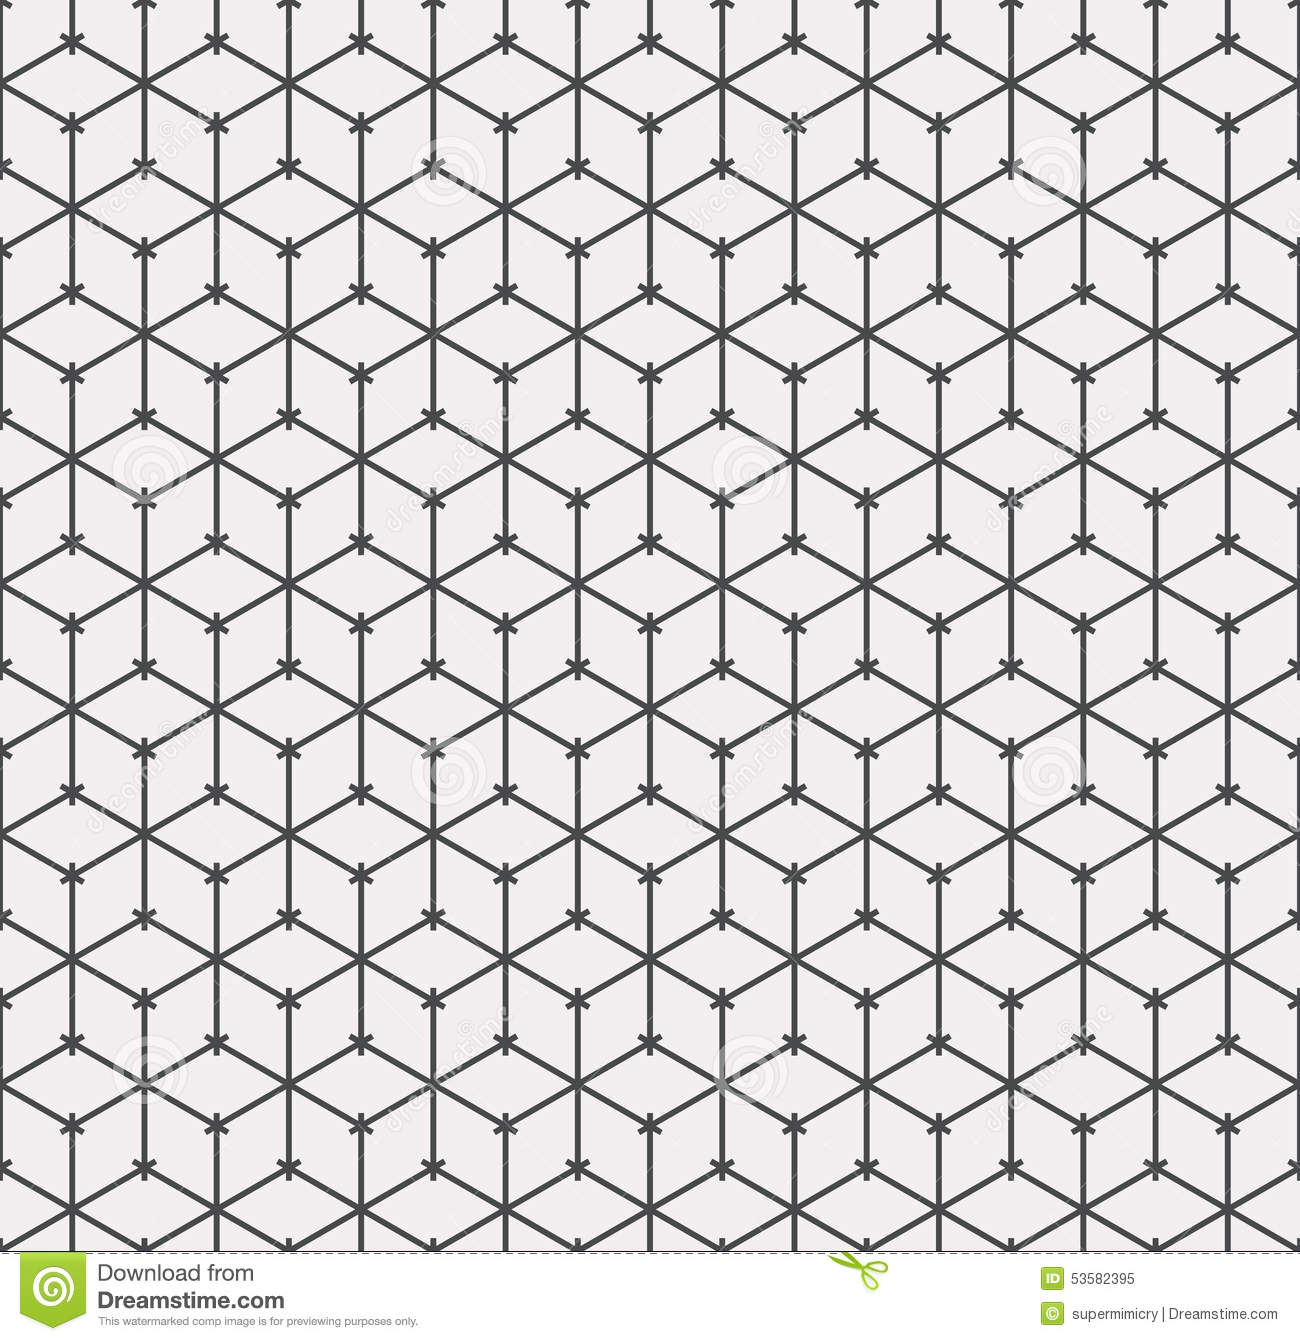 Outline pattern of cubes stock vector. Illustration of